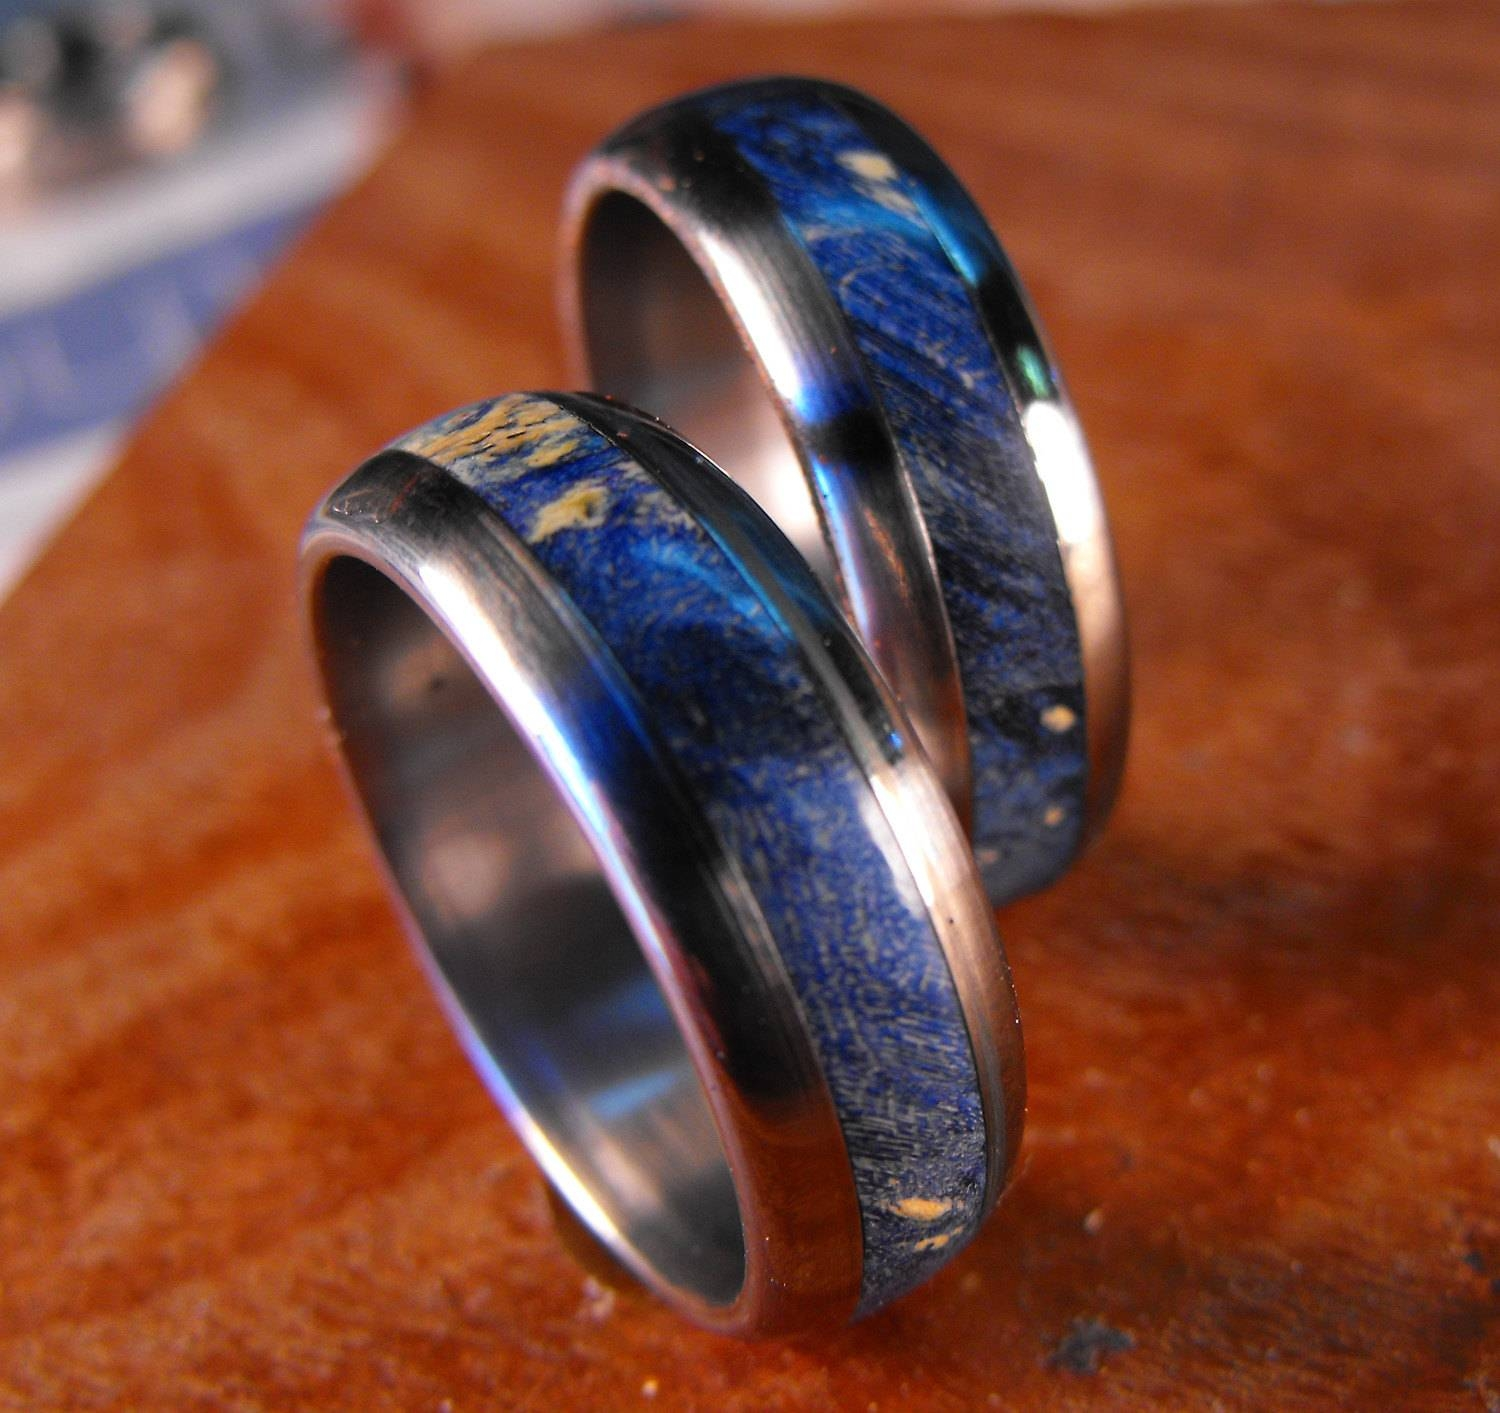 Titanium Rings Wedding Rings Wedding Ring Set His And Hers Intended For Wood Inlay Wedding Bands (View 11 of 15)